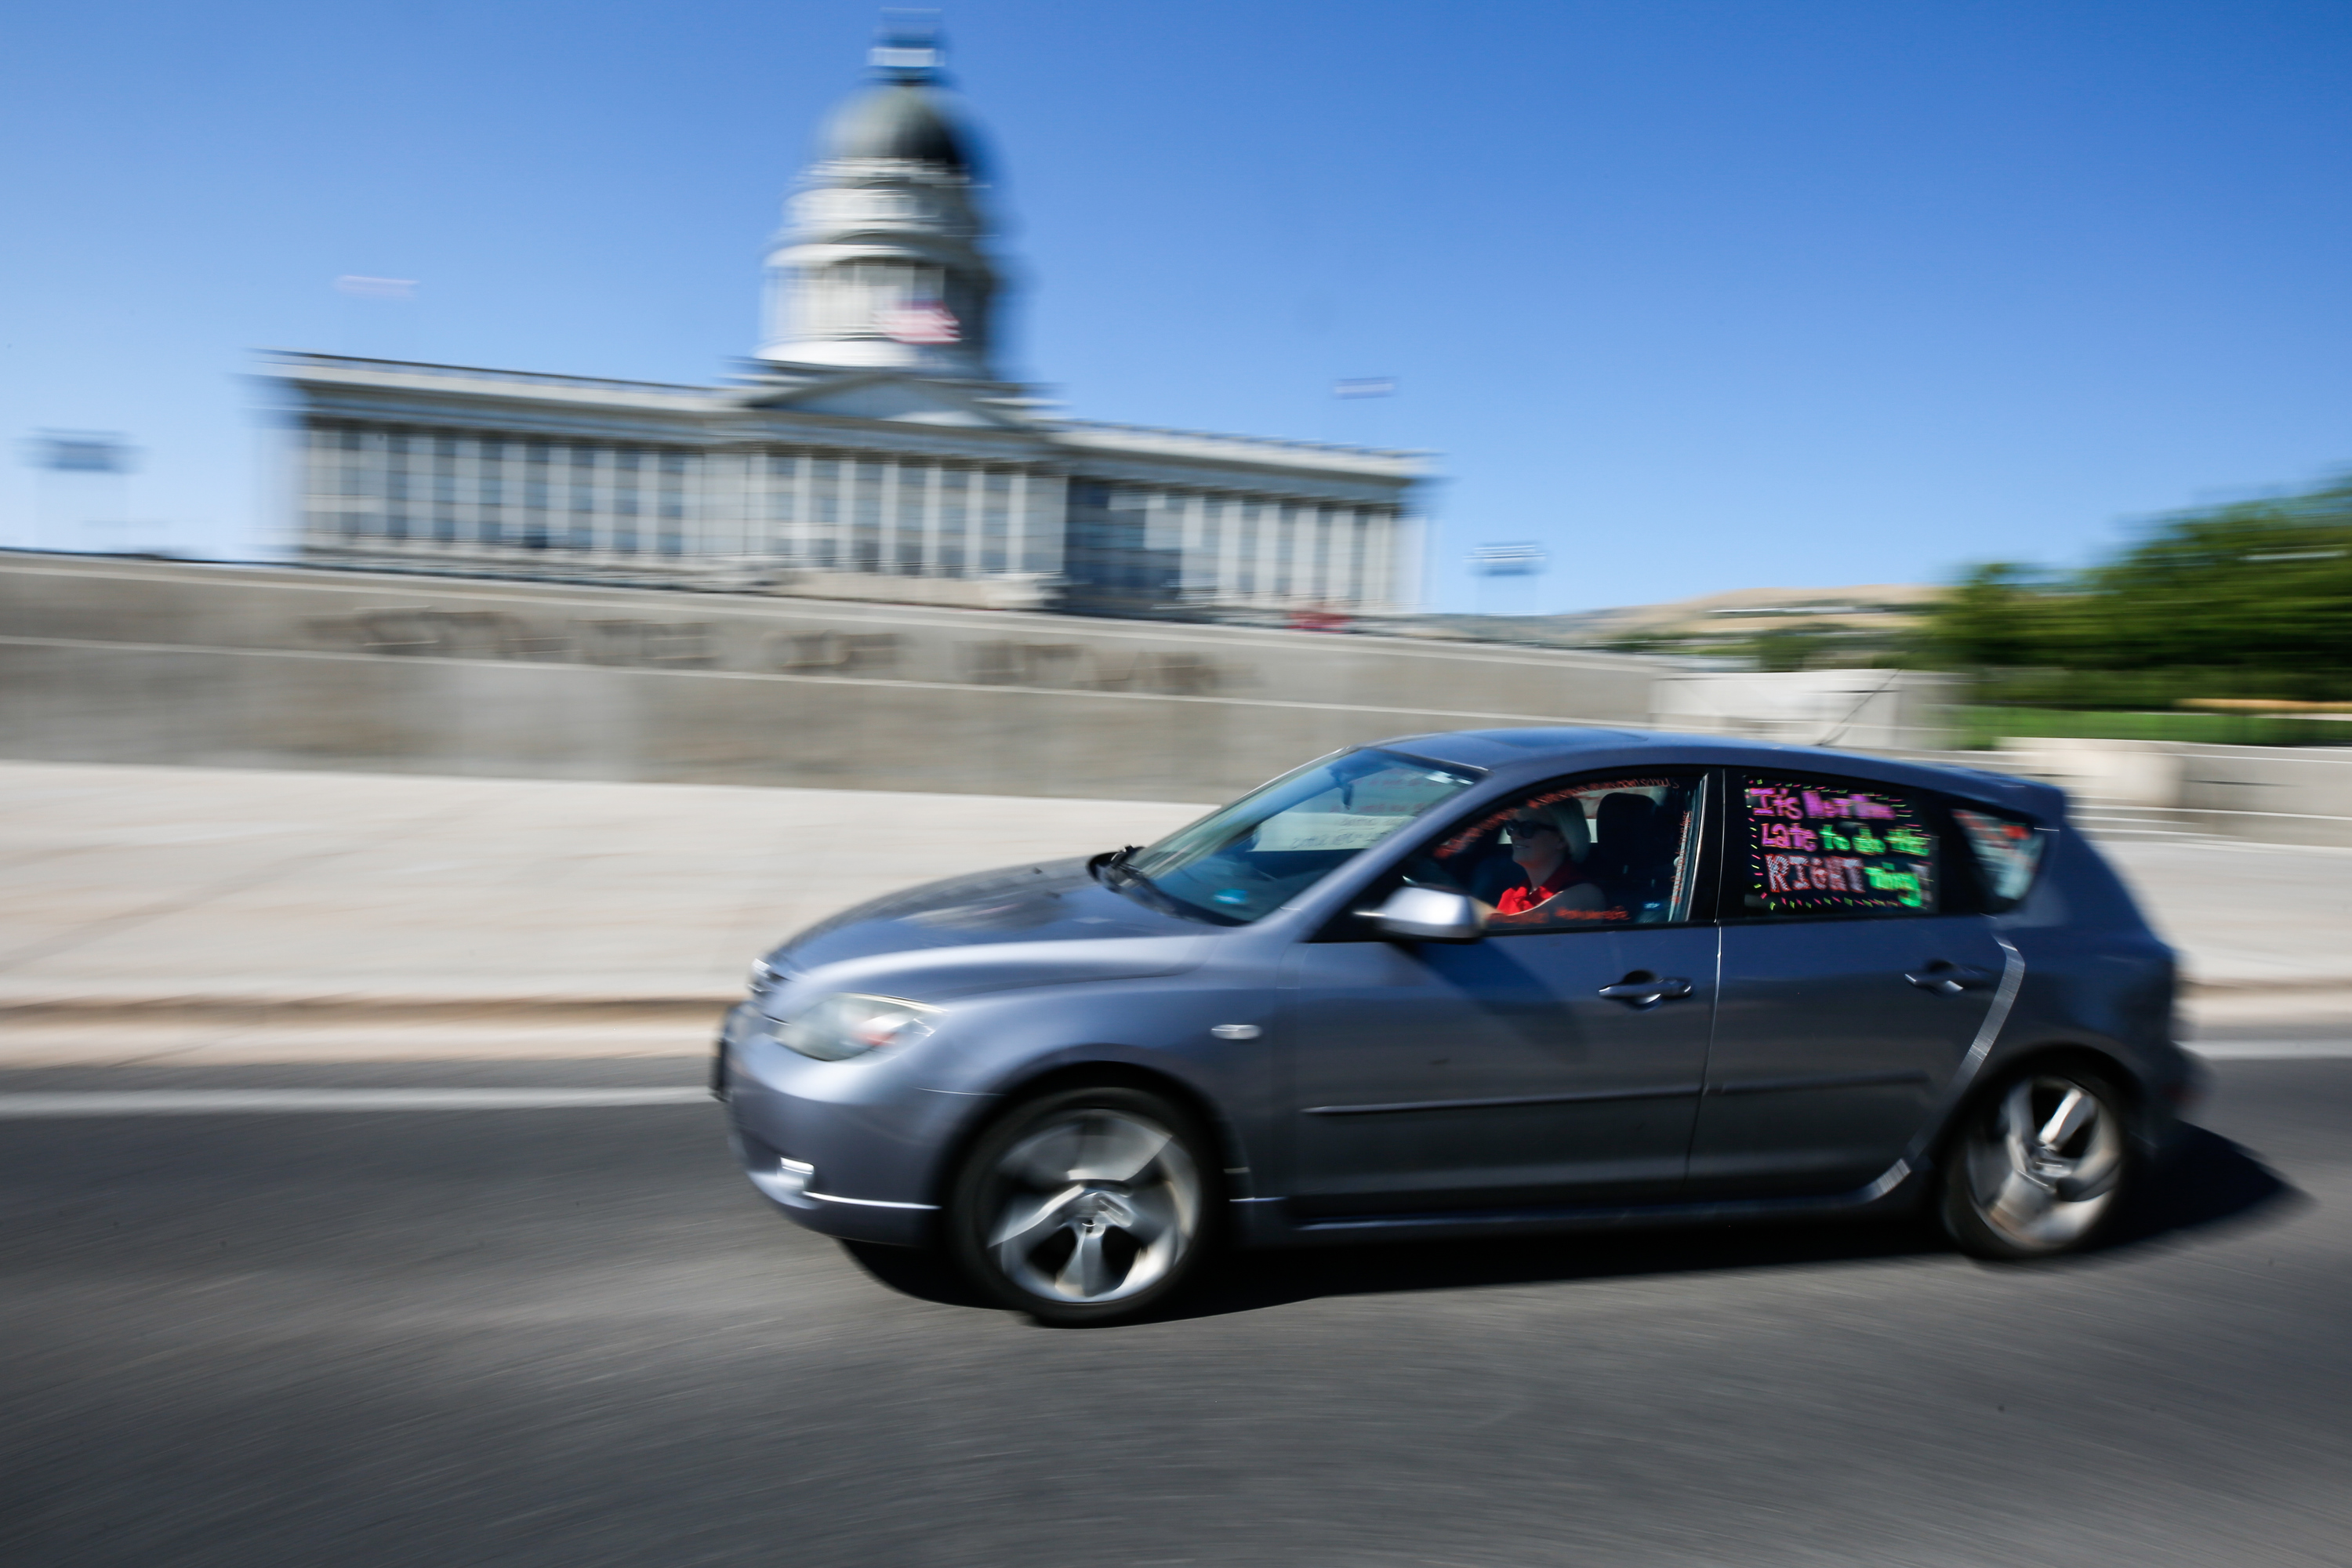 A car painted with slogans drives past the Capitol during a caravan-style rally to show support for opening schools safely in Salt Lake City on Friday, Aug. 7, 2020.